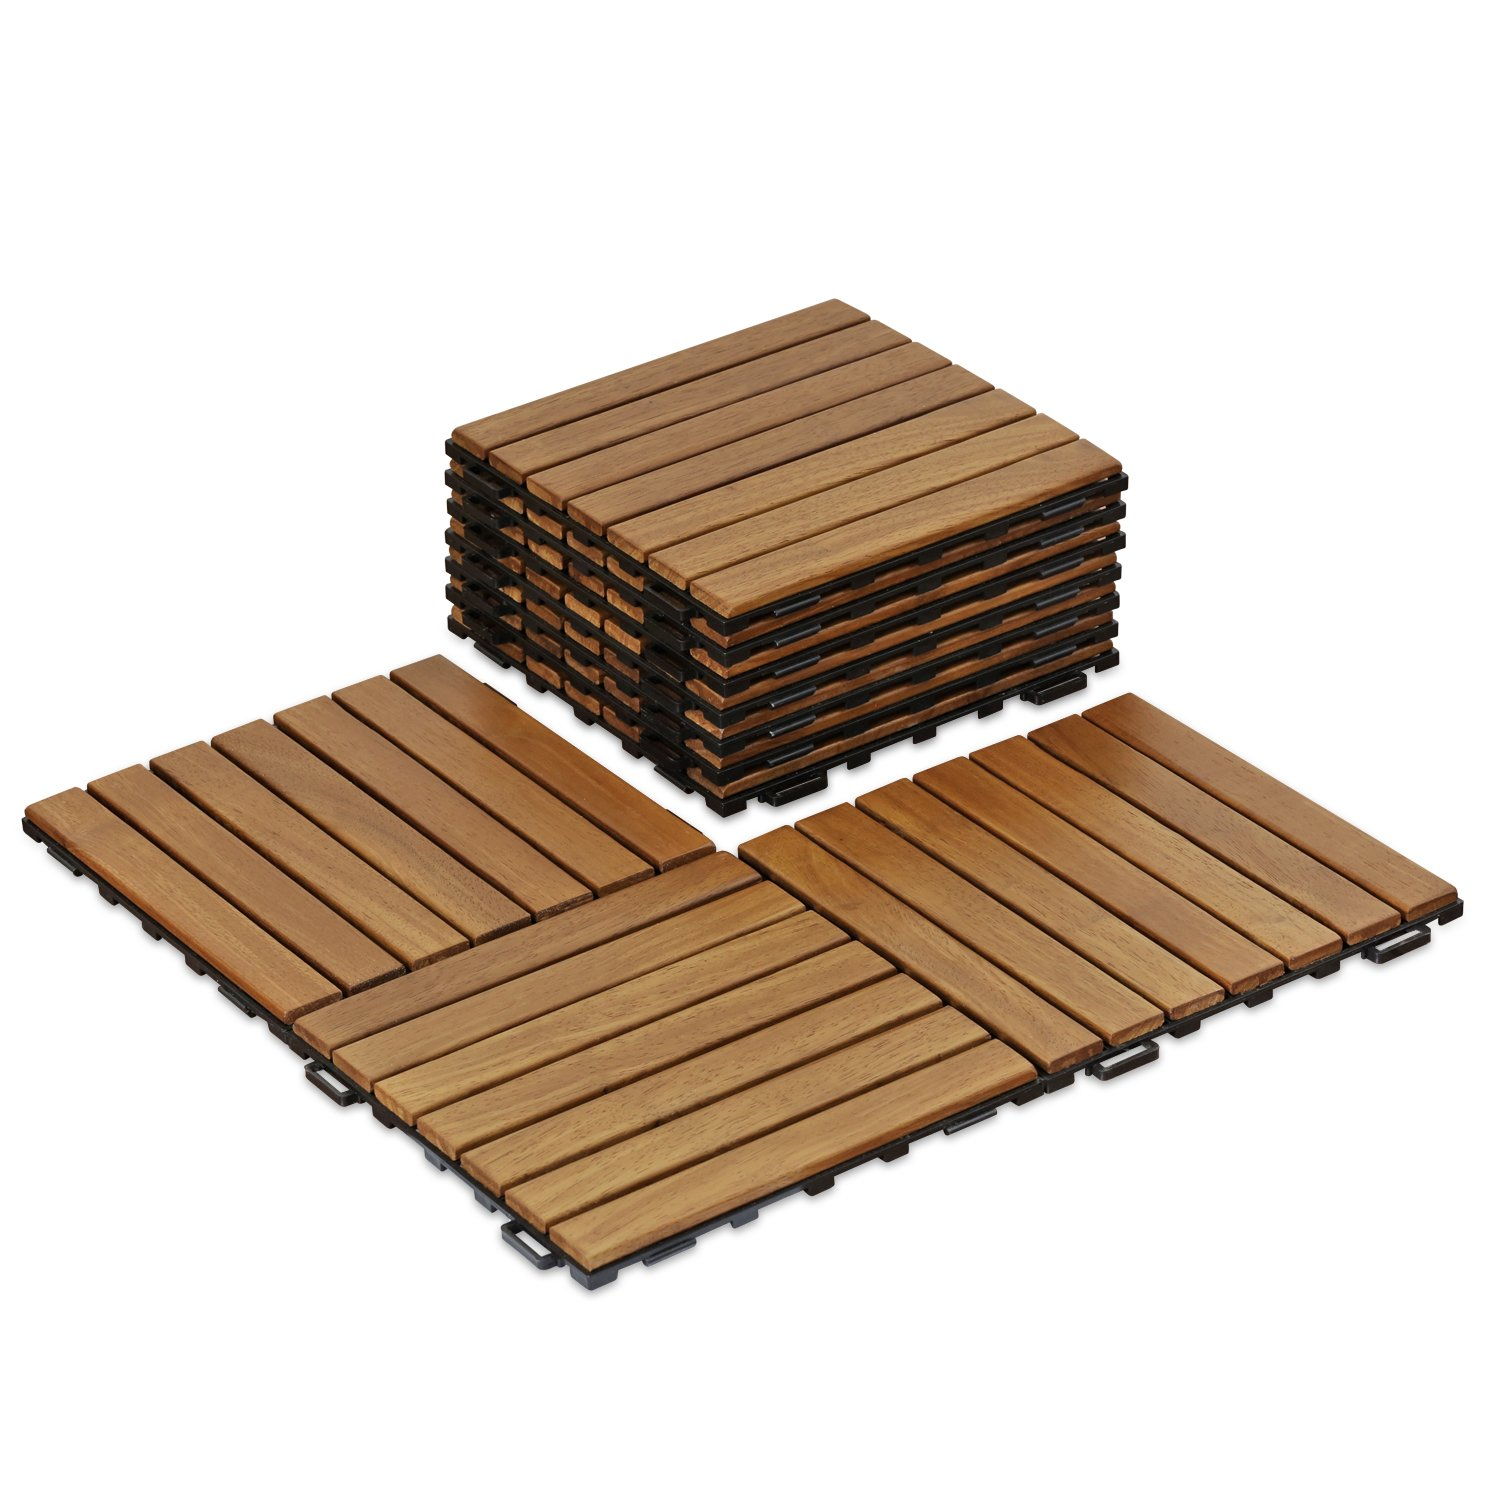 FURINNO FG161033 Tioman Outdoor Floor Wood Tile Interlock 10 Piece/CTN, Honey Oak Color Doormats